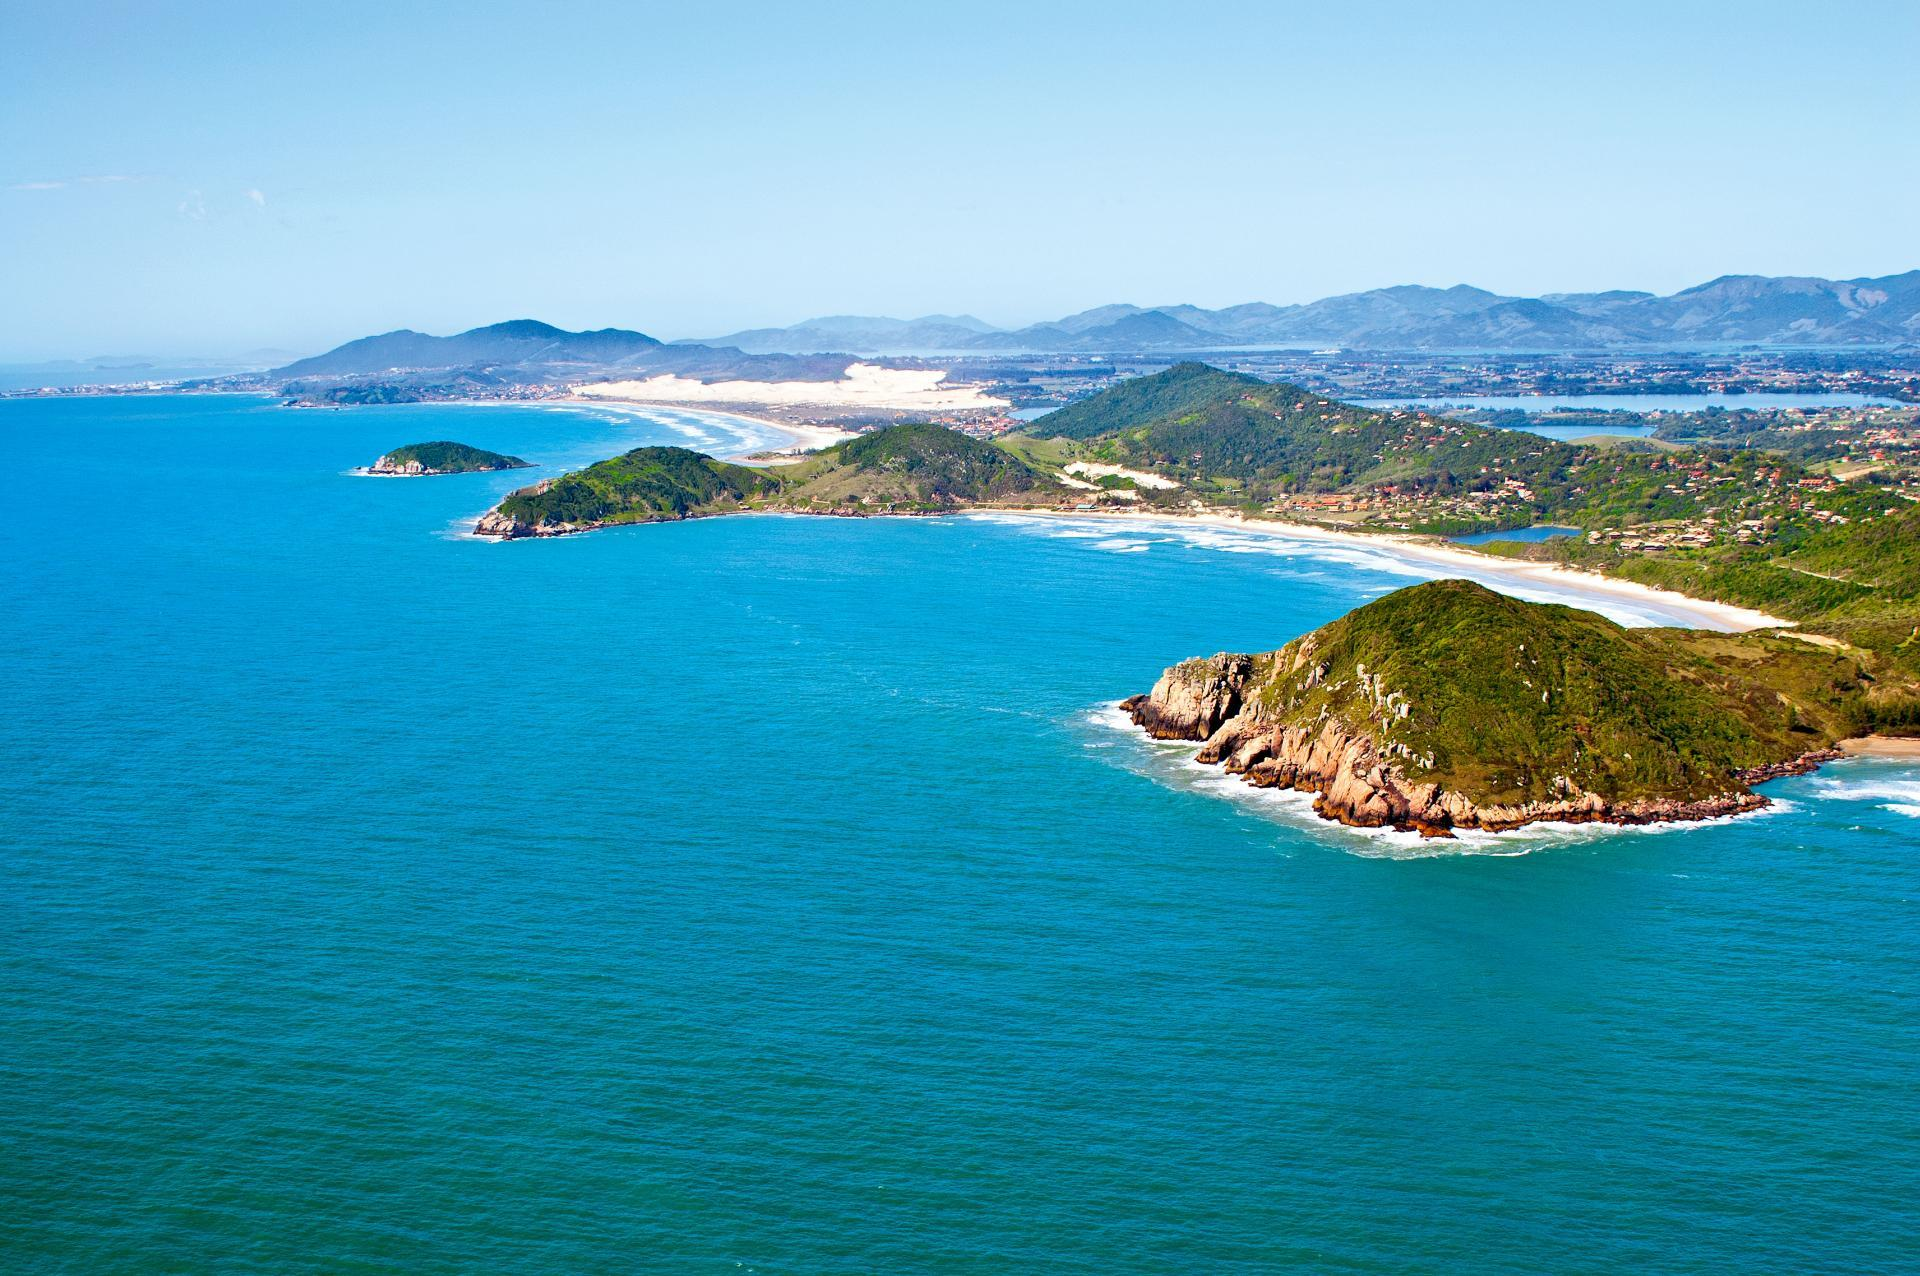 A view of Praia do Rosa from the air.